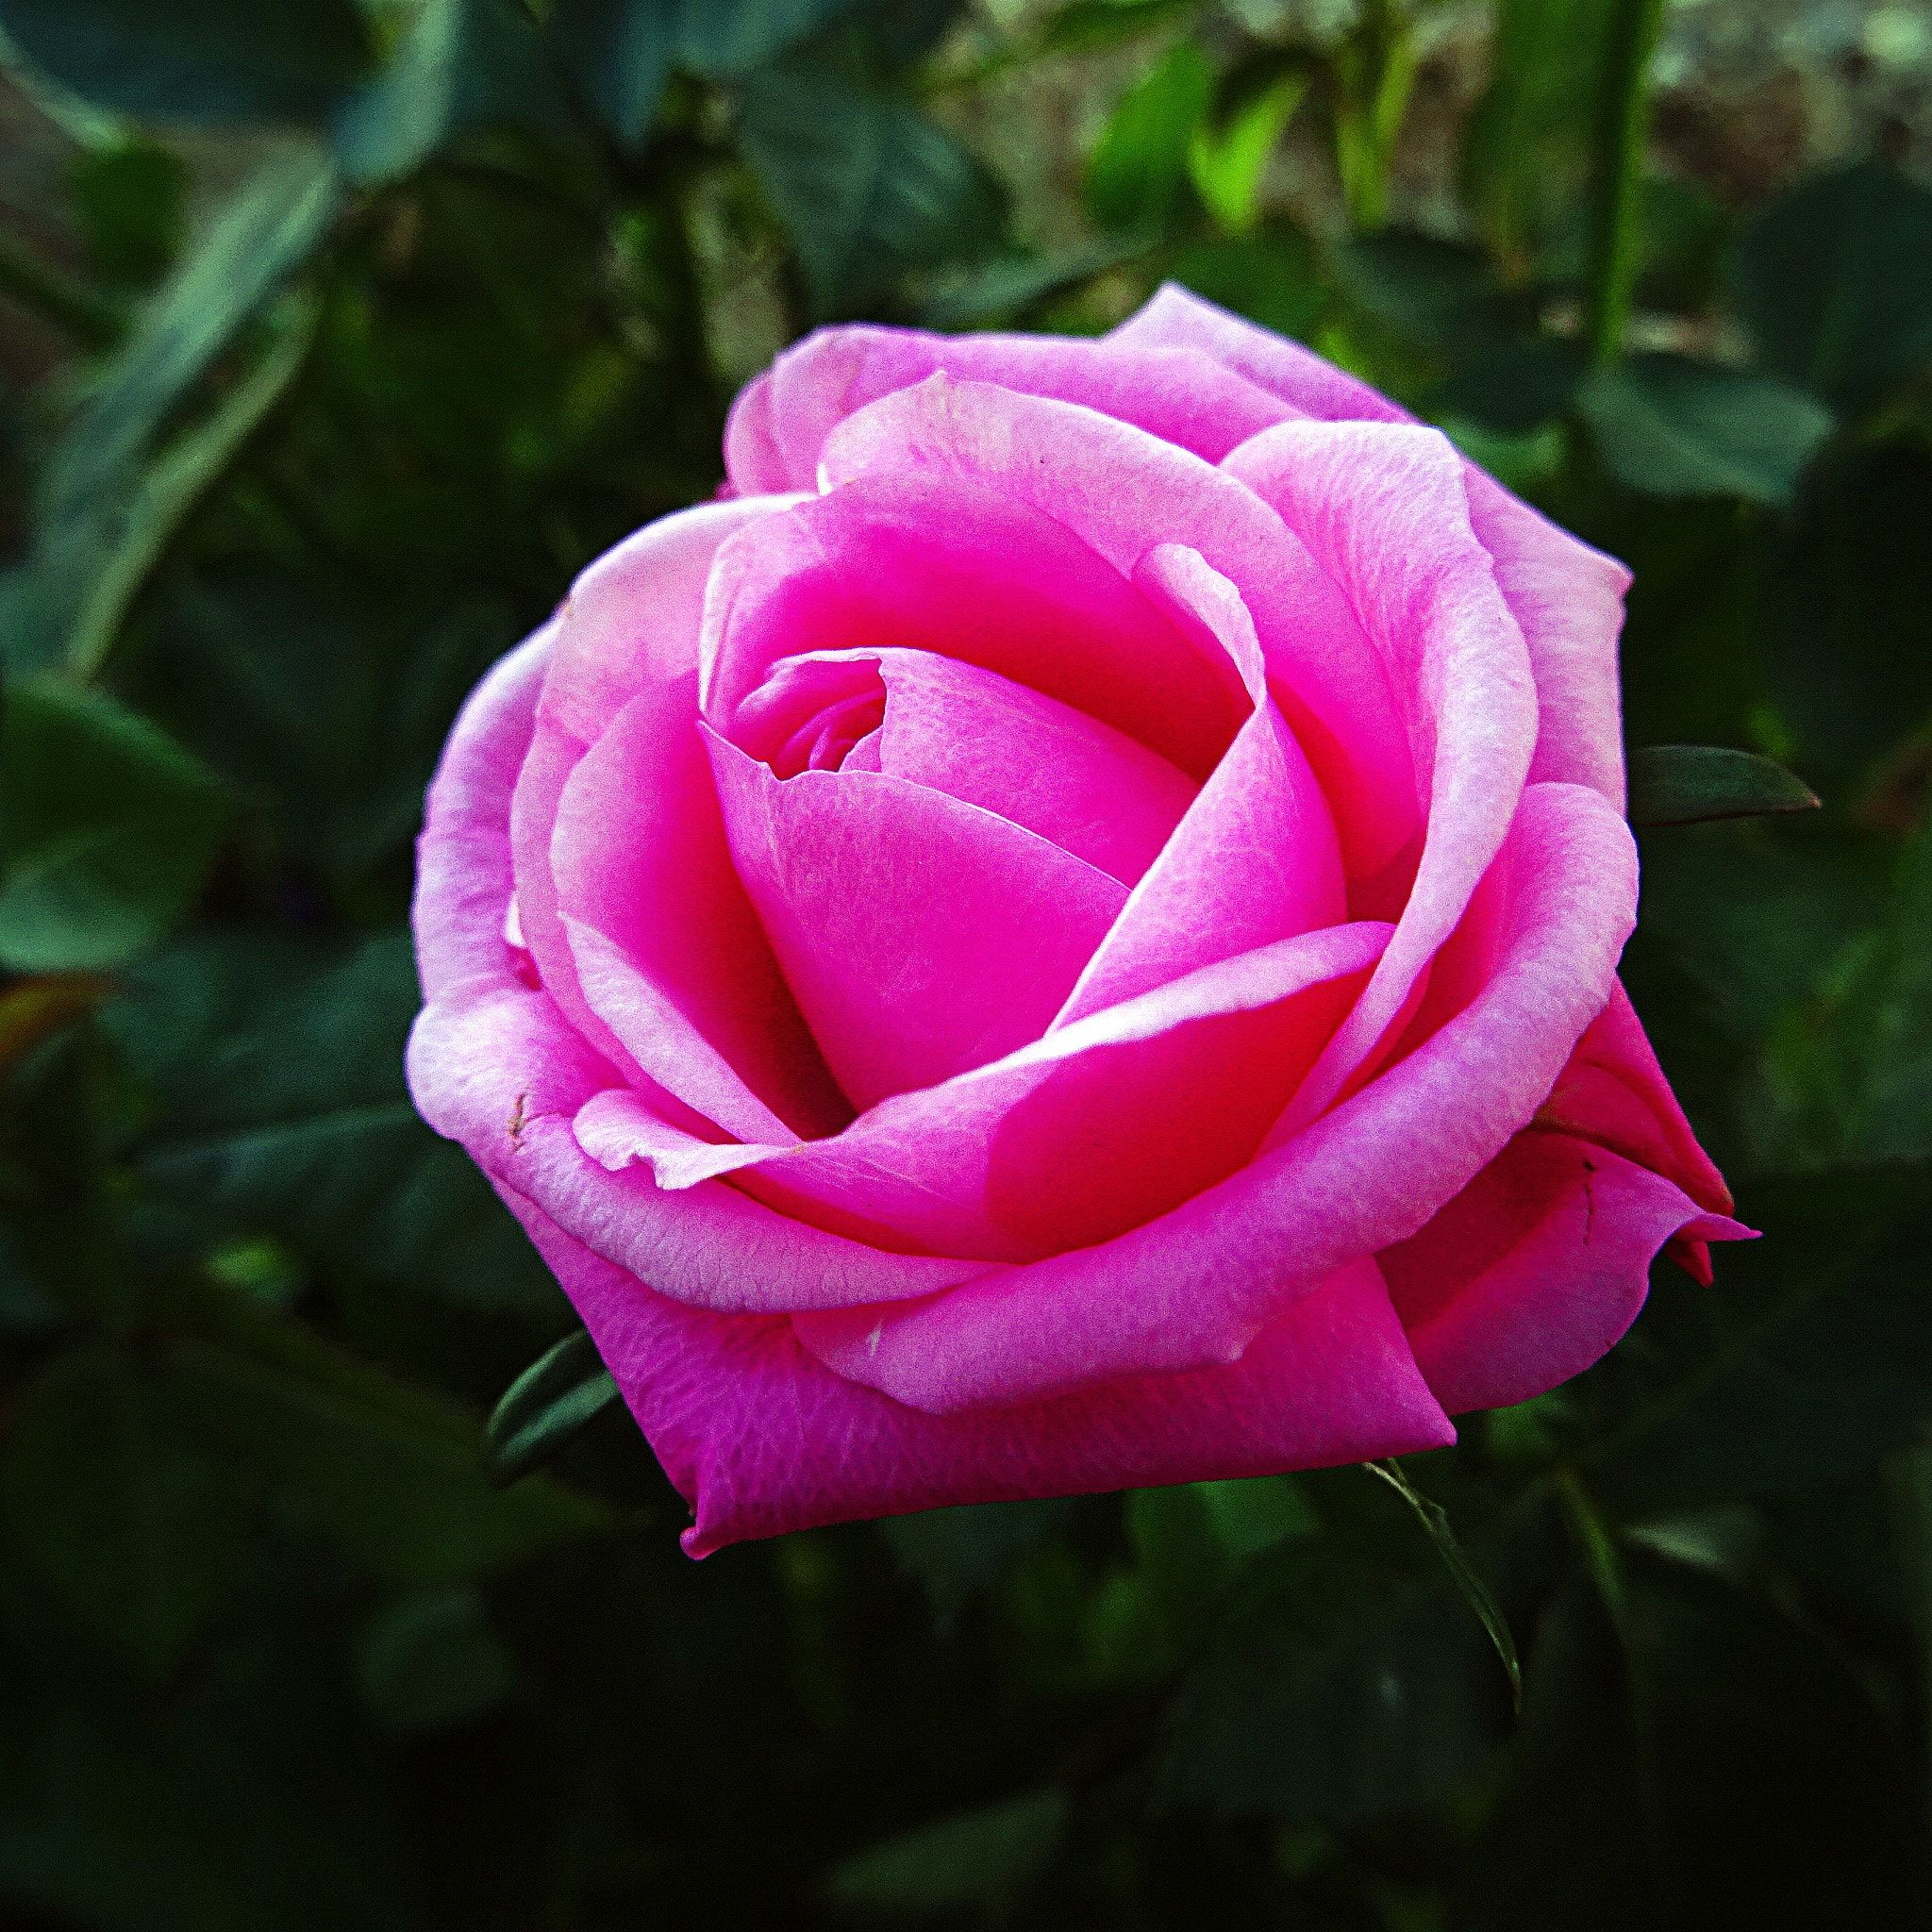 Pink rose by Olcay Sivri on 500px